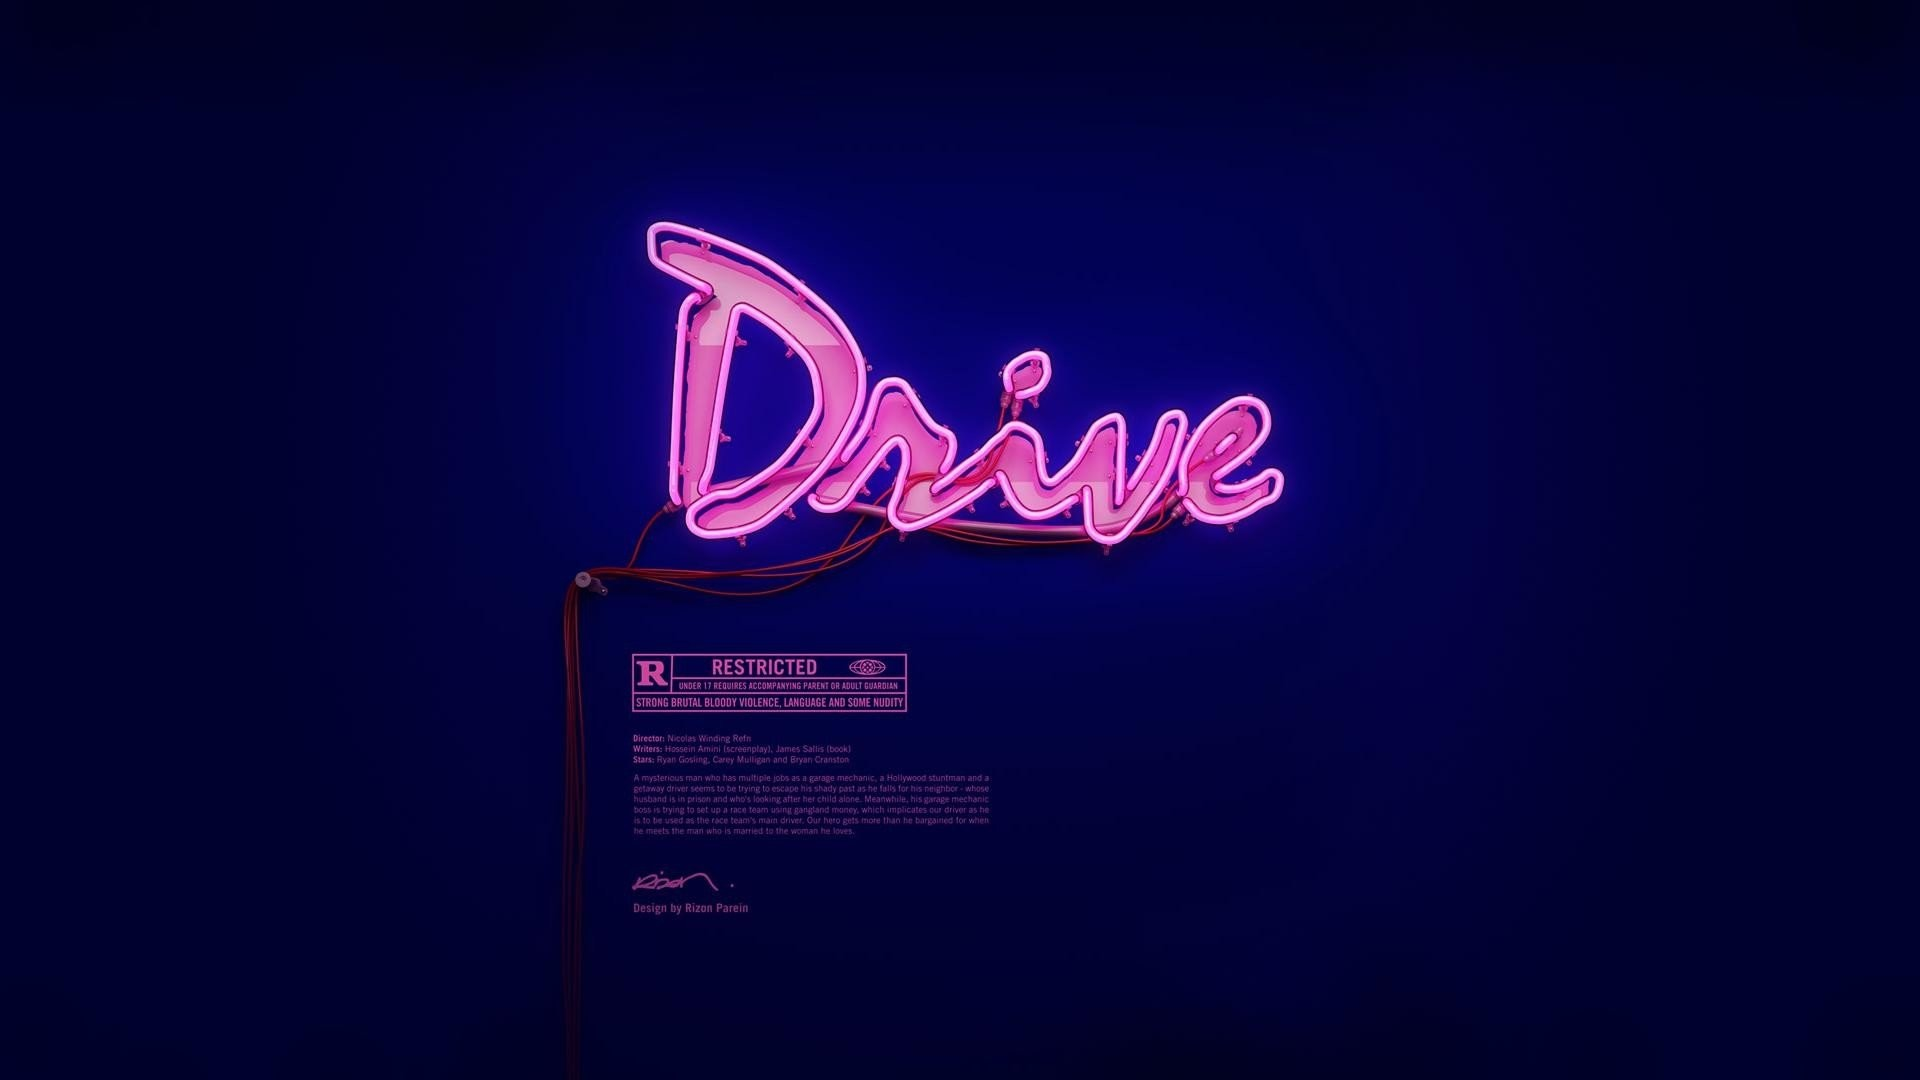 movies drive Drive (movie) neon wallpaper background